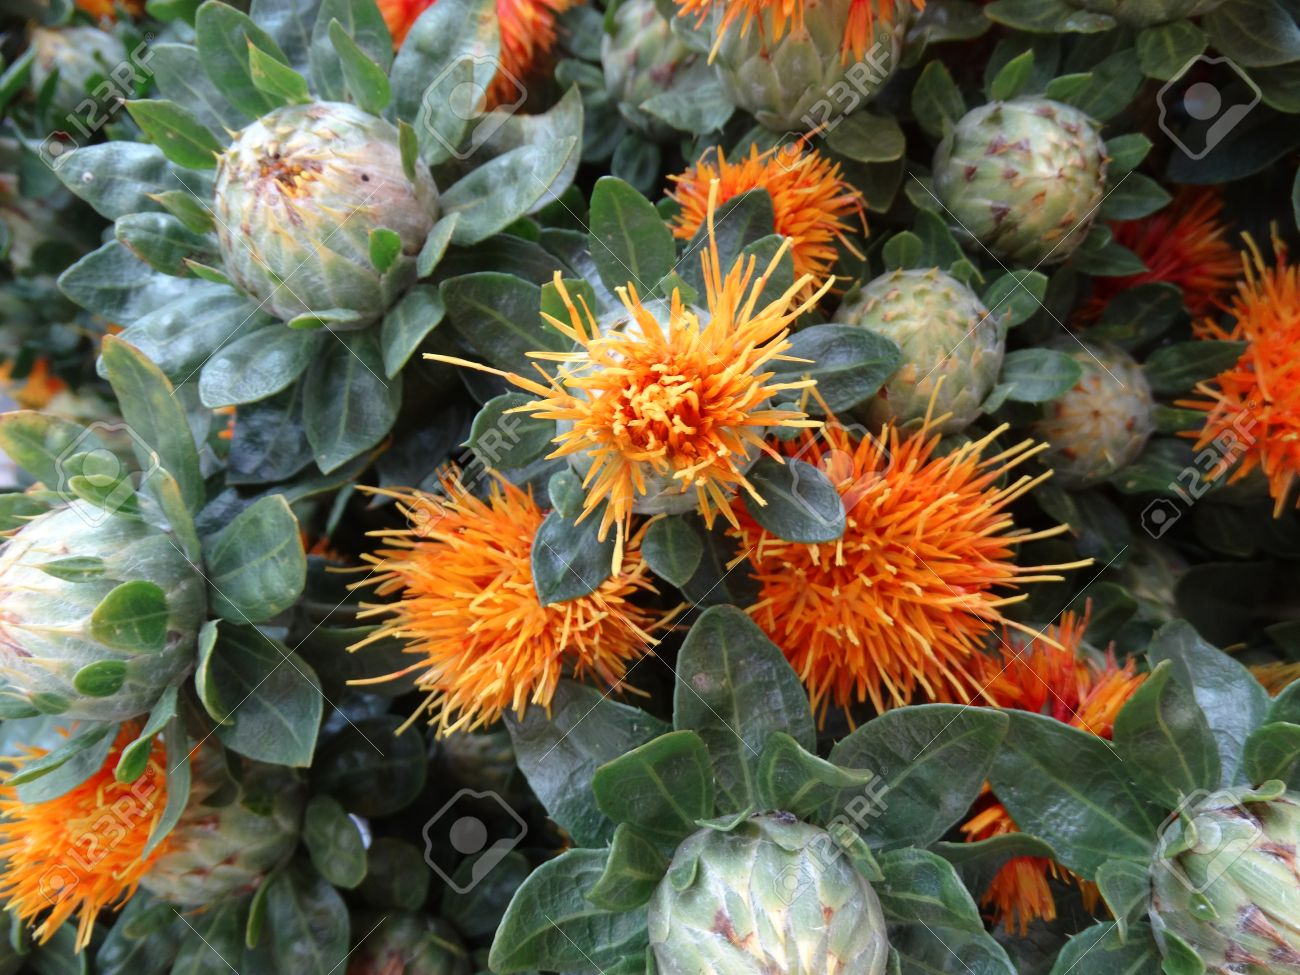 Safflower Carthamus Tinctorius Cultivated Herbaceous Plant Stock Photo Picture And Royalty Free Image Image 34745502